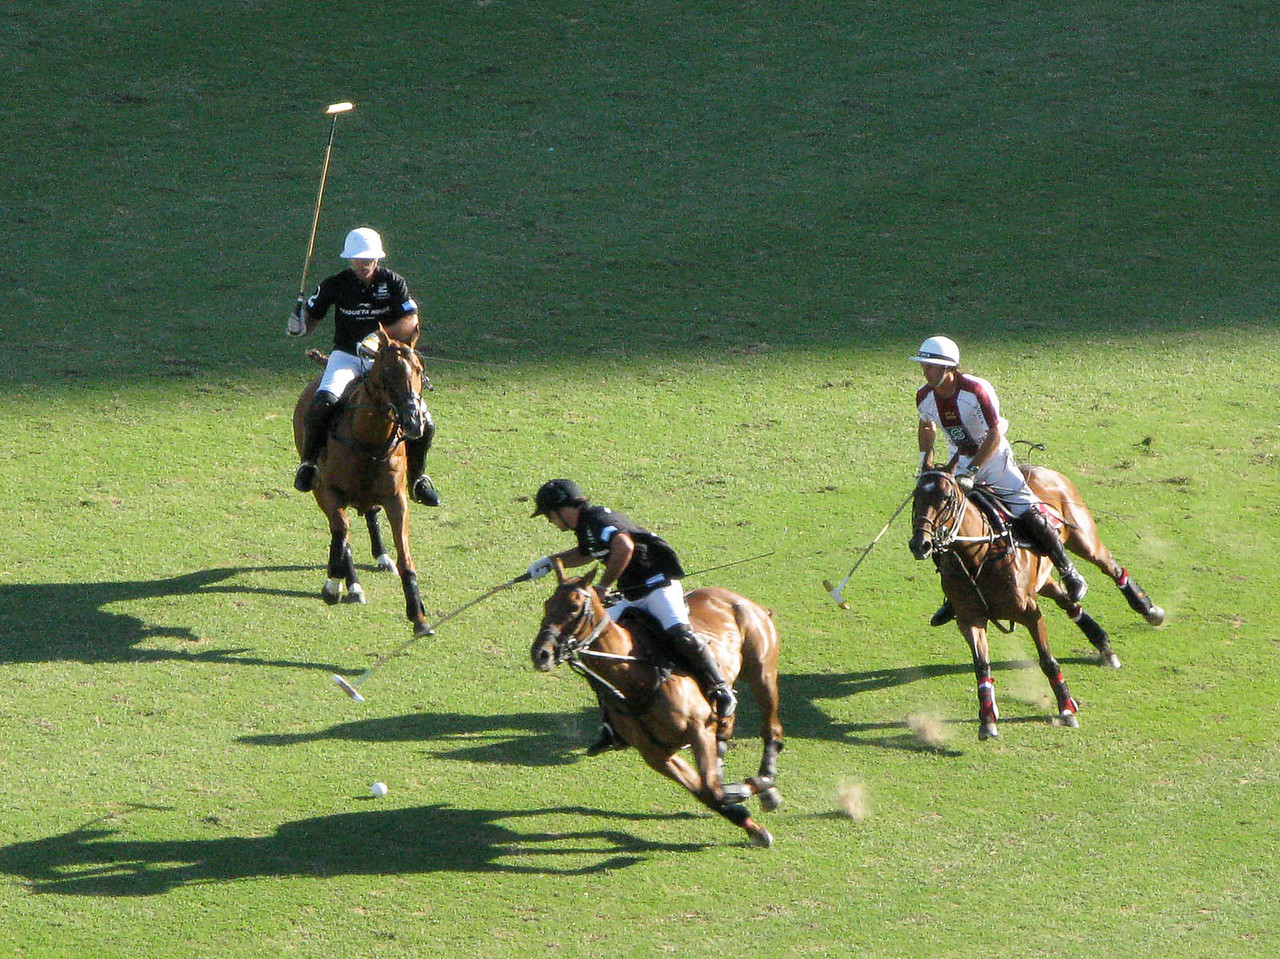 Argentine Polo.  Keep your eye on the ball.